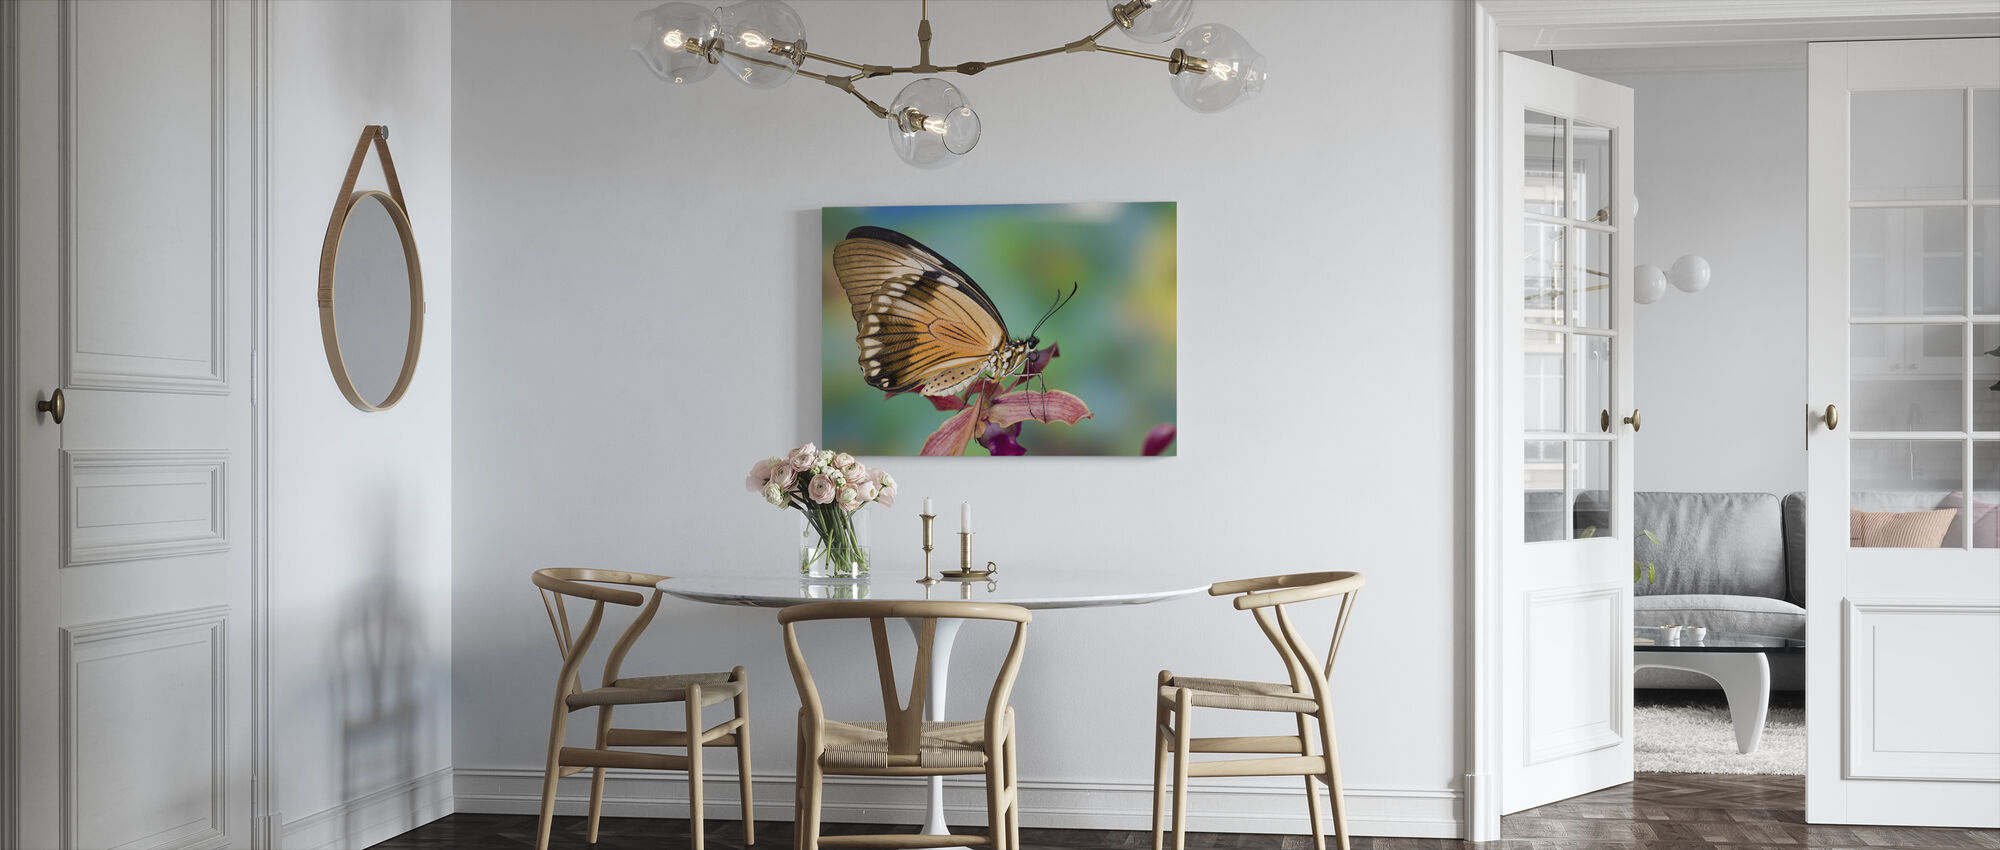 Papilio Dardanus Butterfly on Orchid - Canvas print - Kitchen